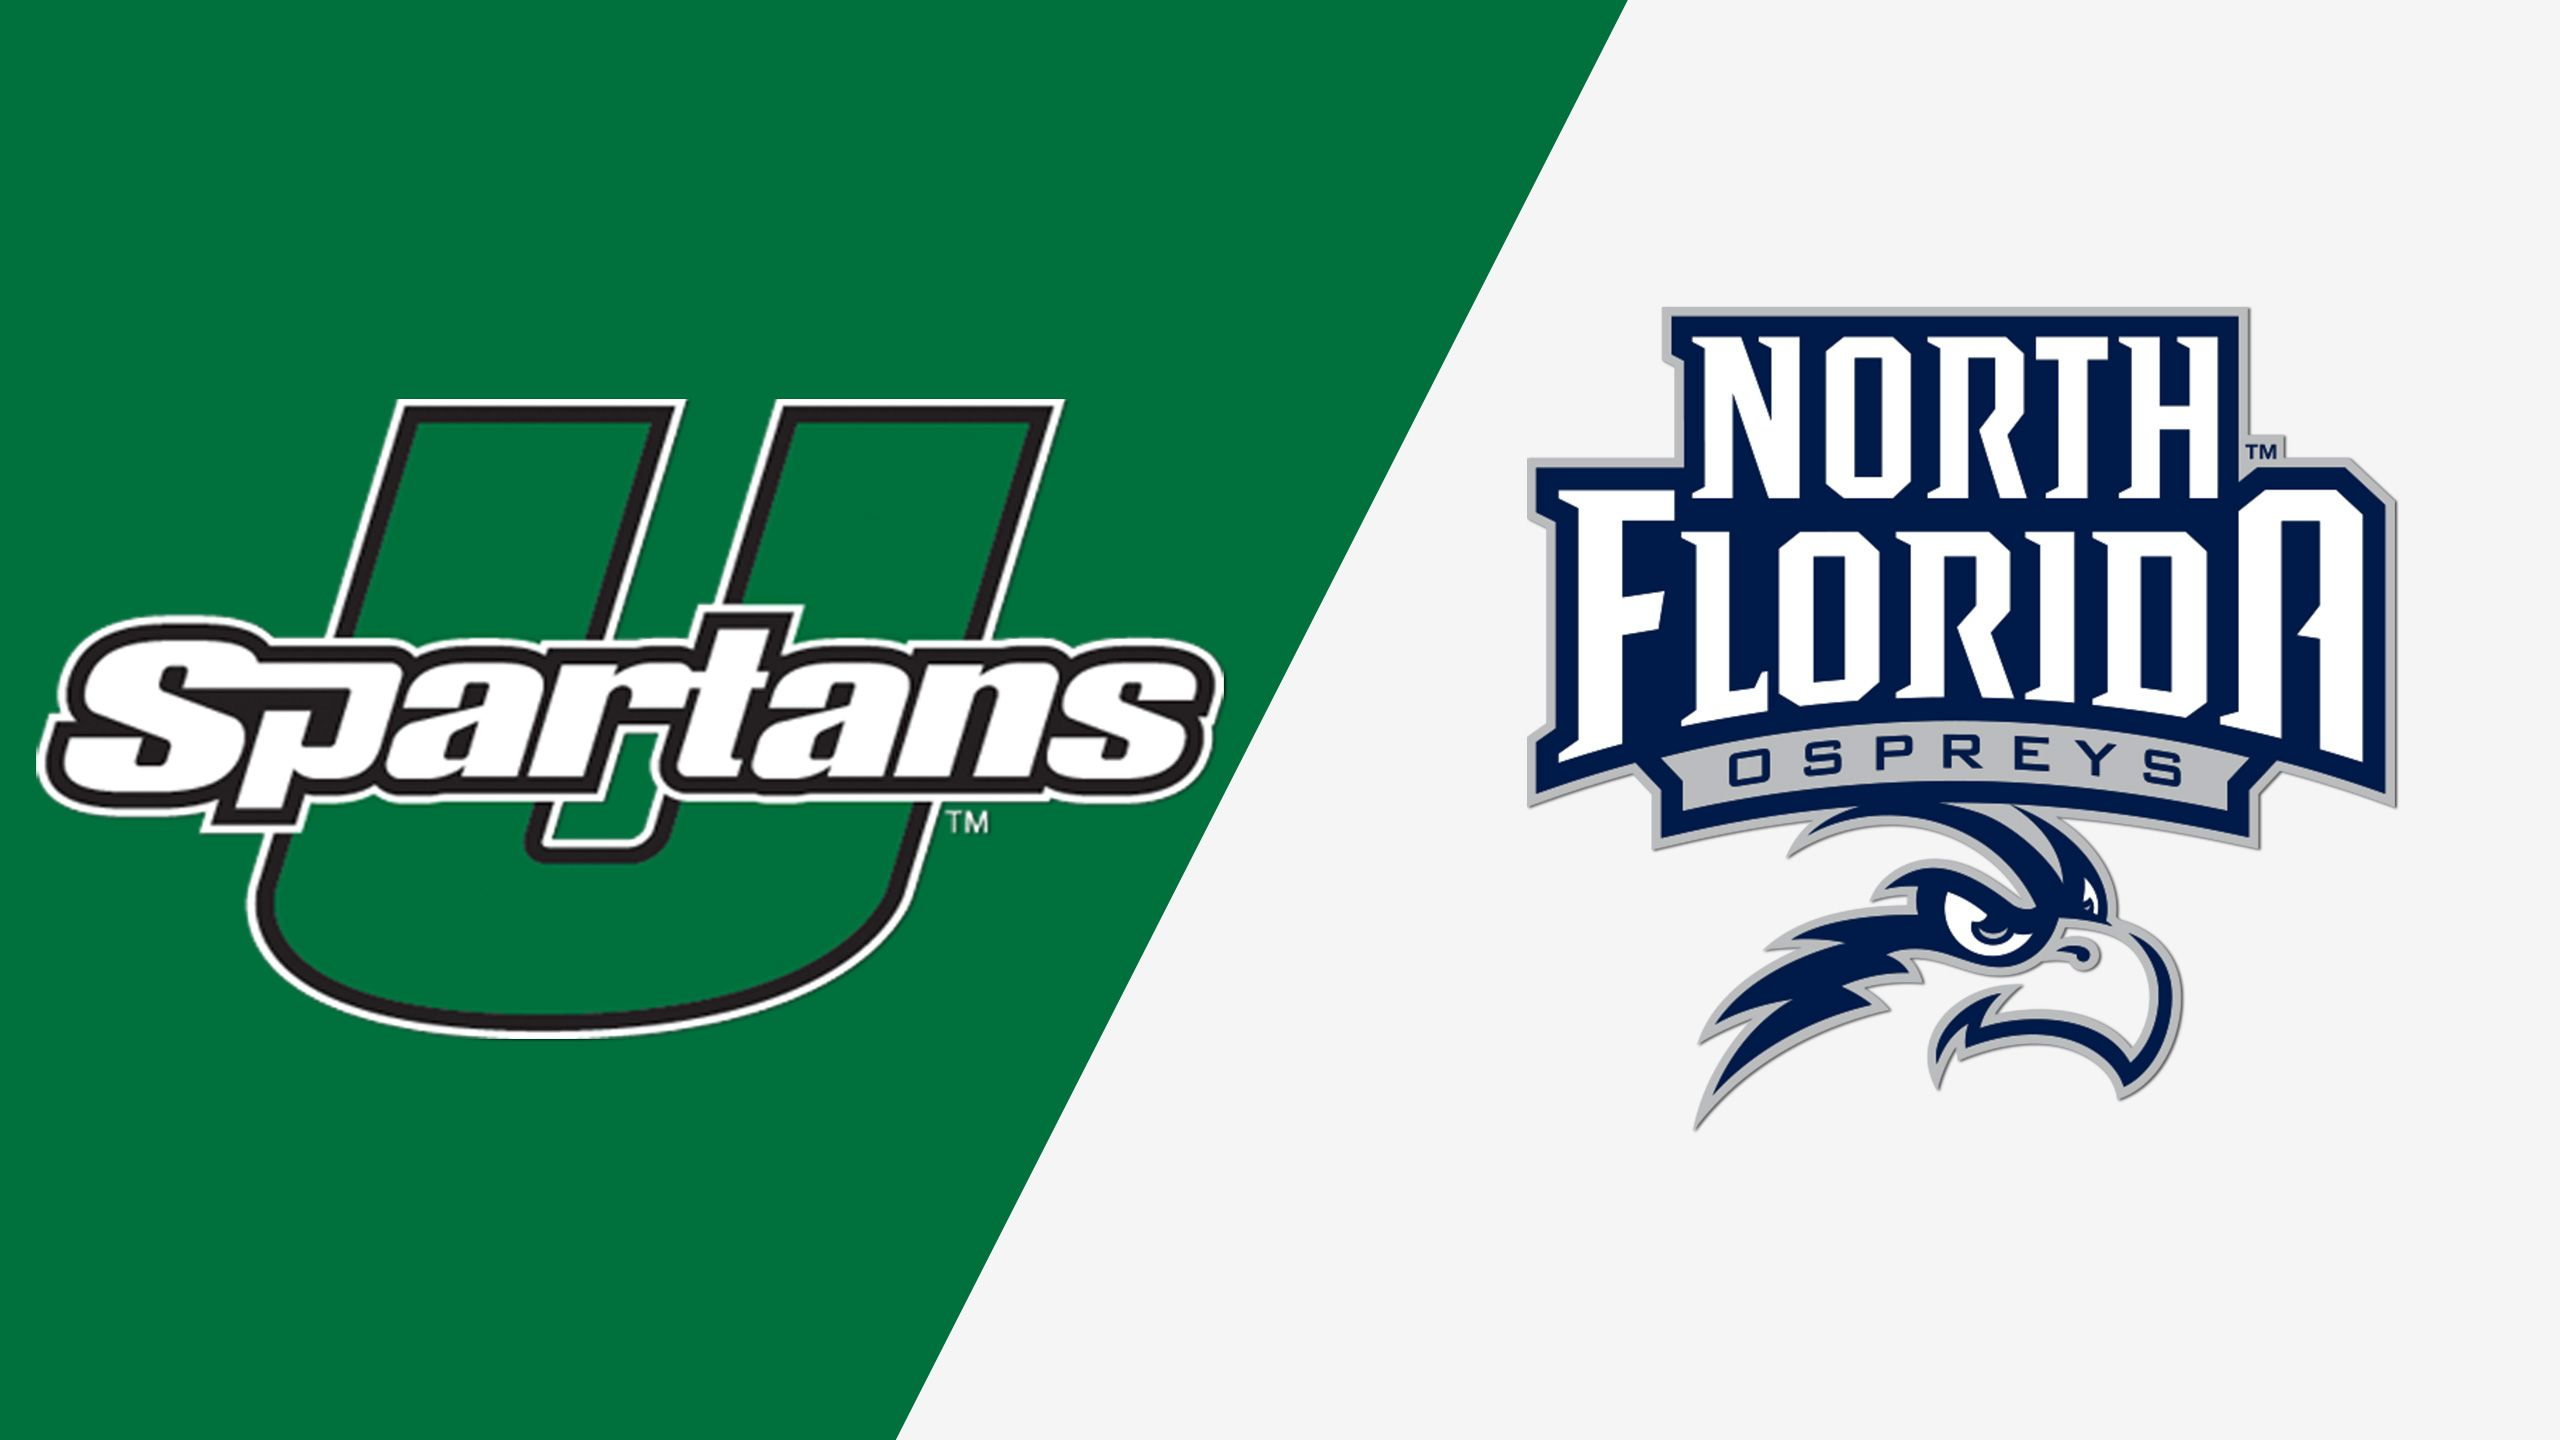 USC Upstate vs. North Florida (Baseball)